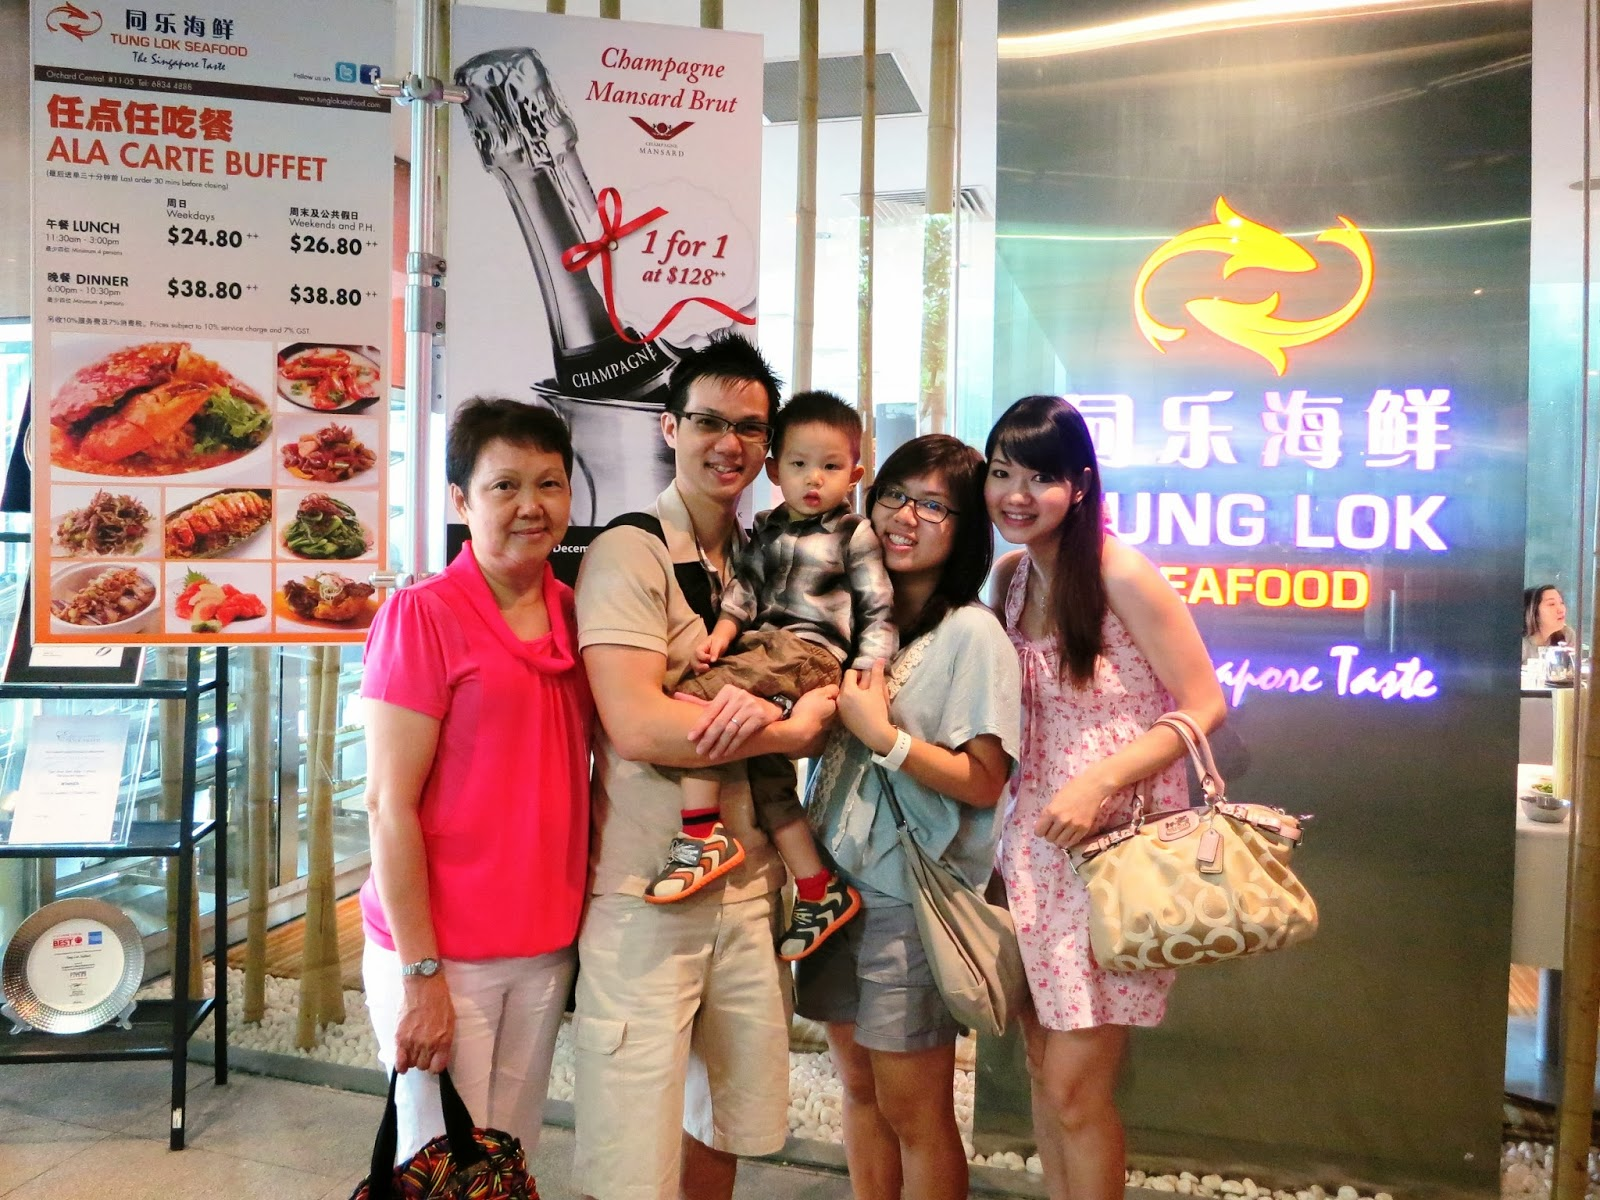 Tung lok orchard central address book